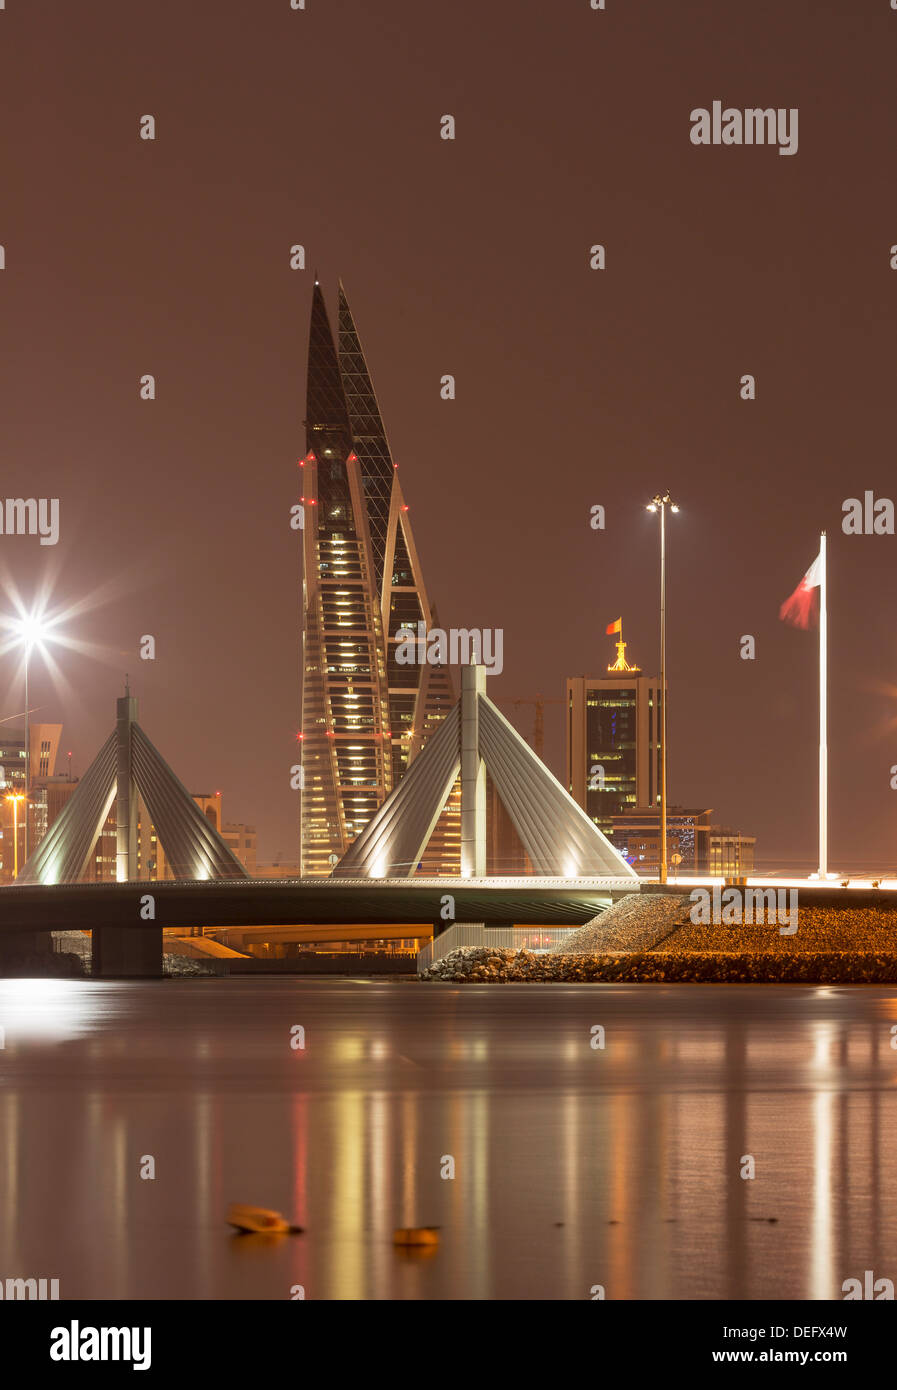 Manama at night, Bahrain, Middle East - Stock Image